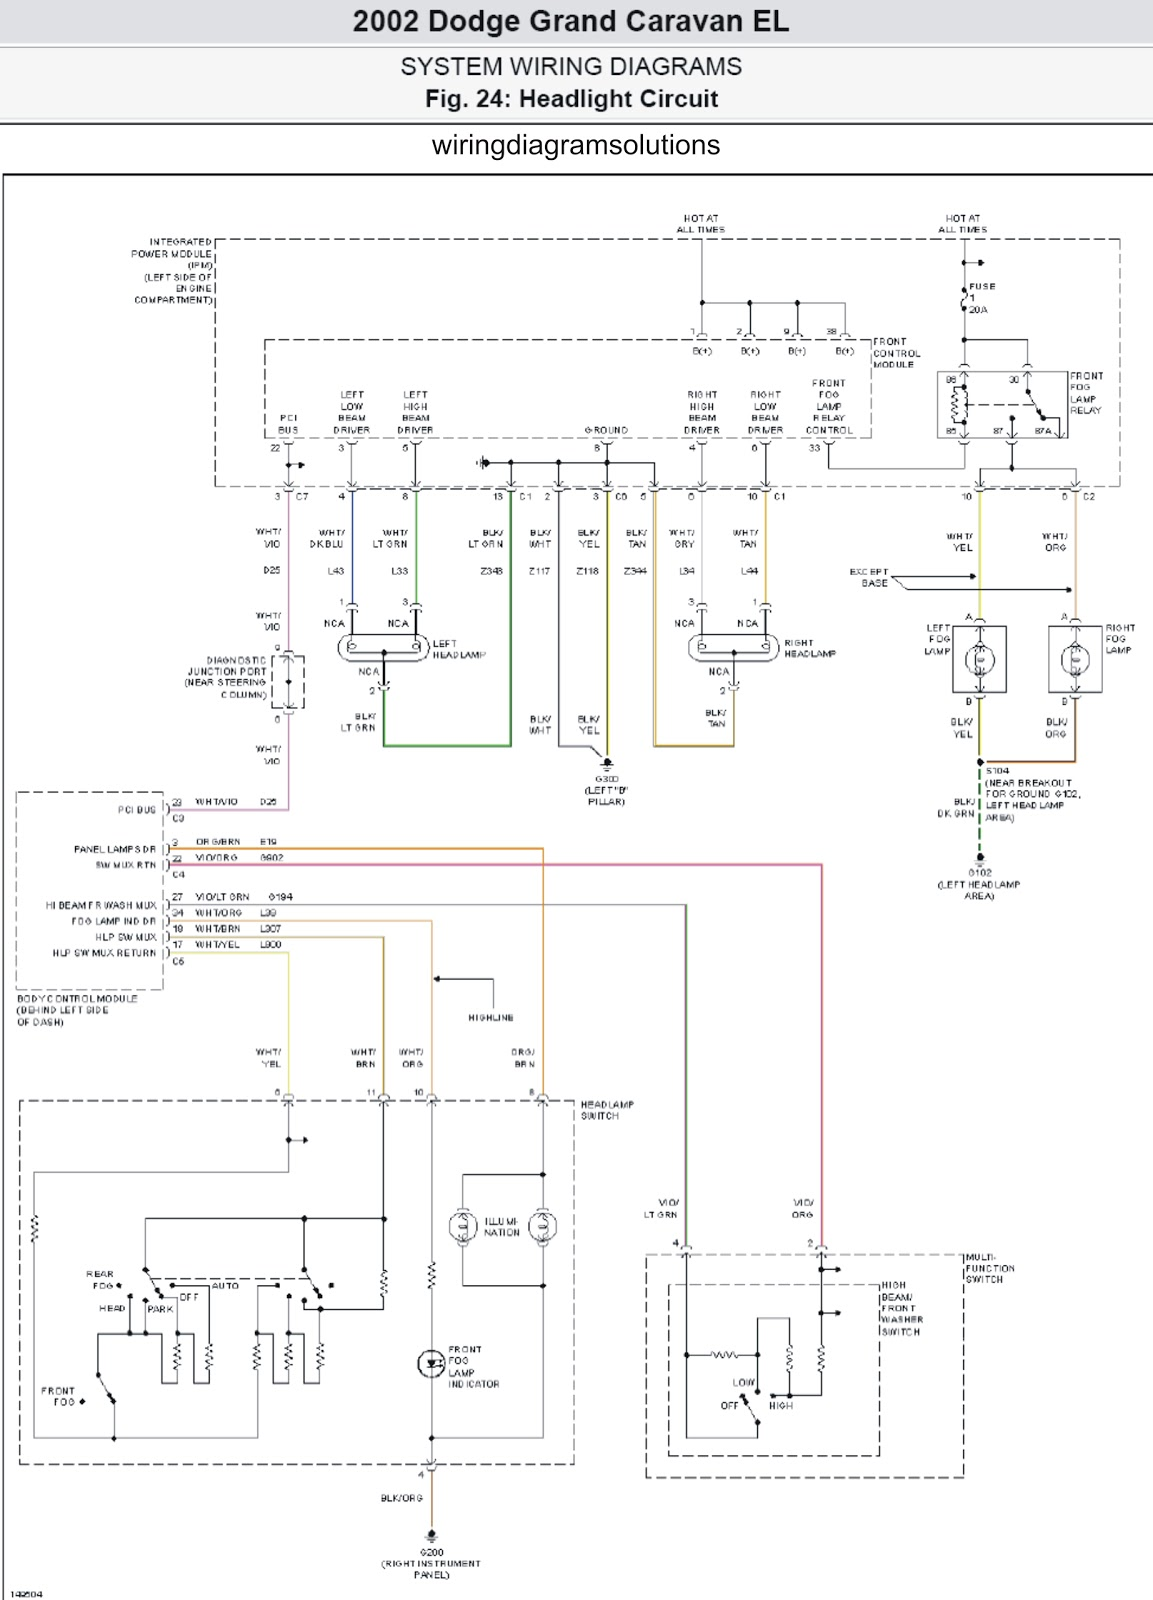 2002+dodge+caravan+Headlight+Circuit 2006 dodge ram 1500 headlight switch wiring diagram wirdig wiring diagram for a 2002 ford ranger at mifinder.co